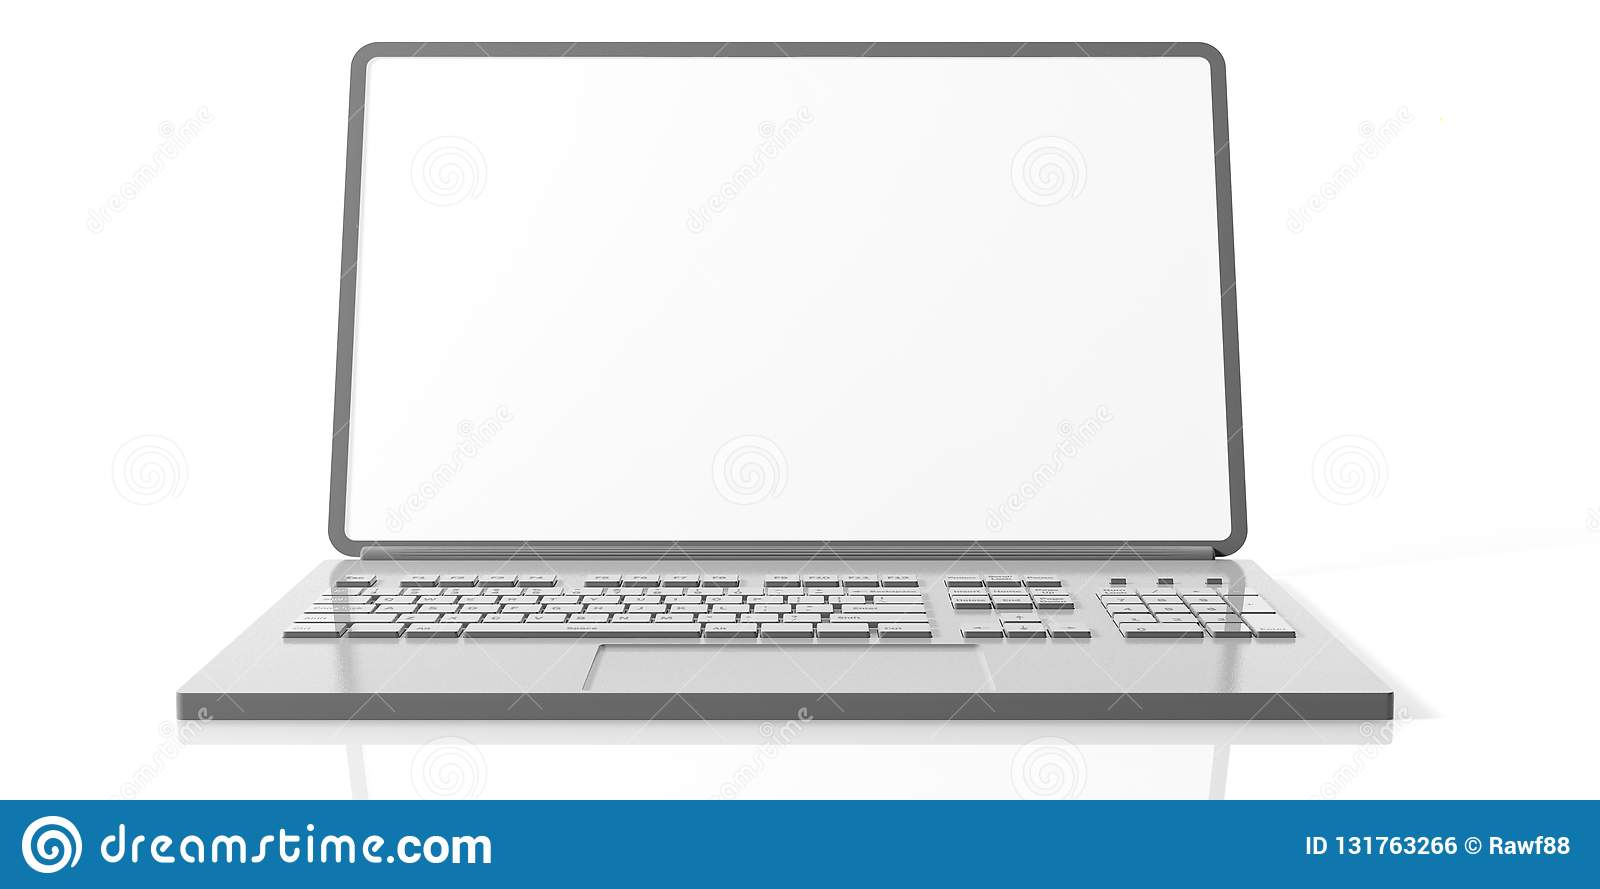 Computer laptop with blank screen isolated on white background, front view.